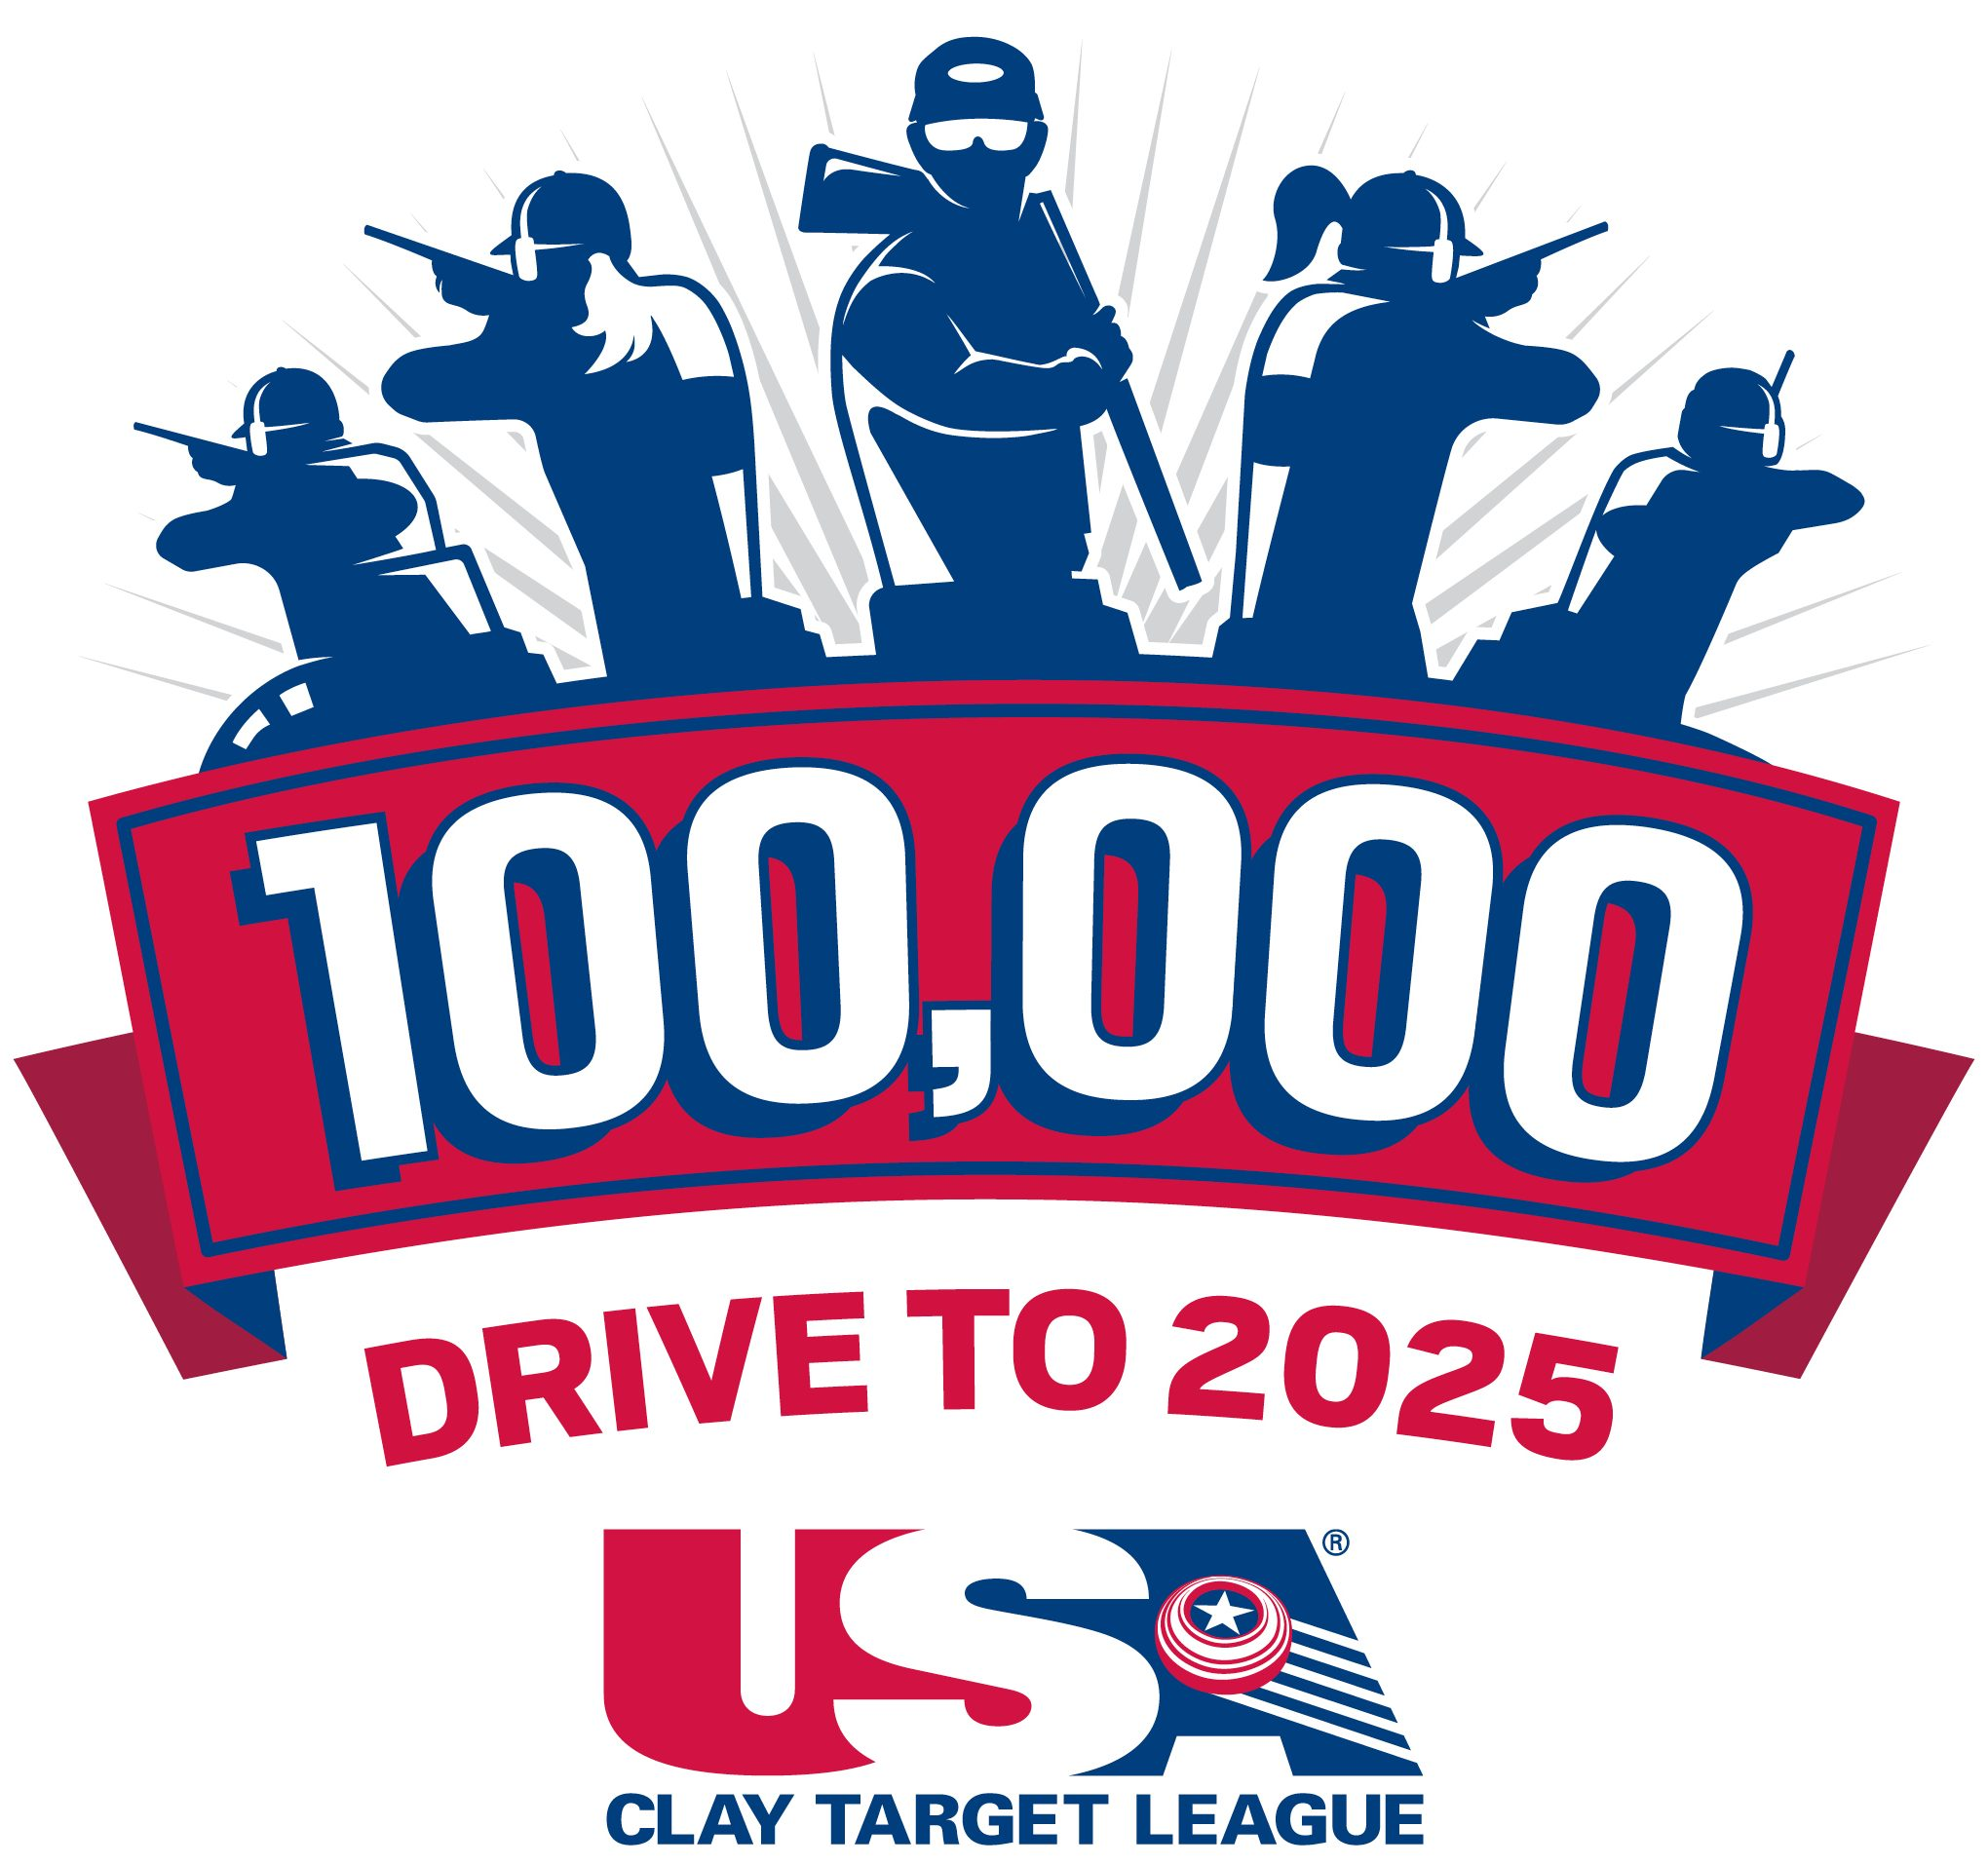 USA Clay Target League 2025 Vision